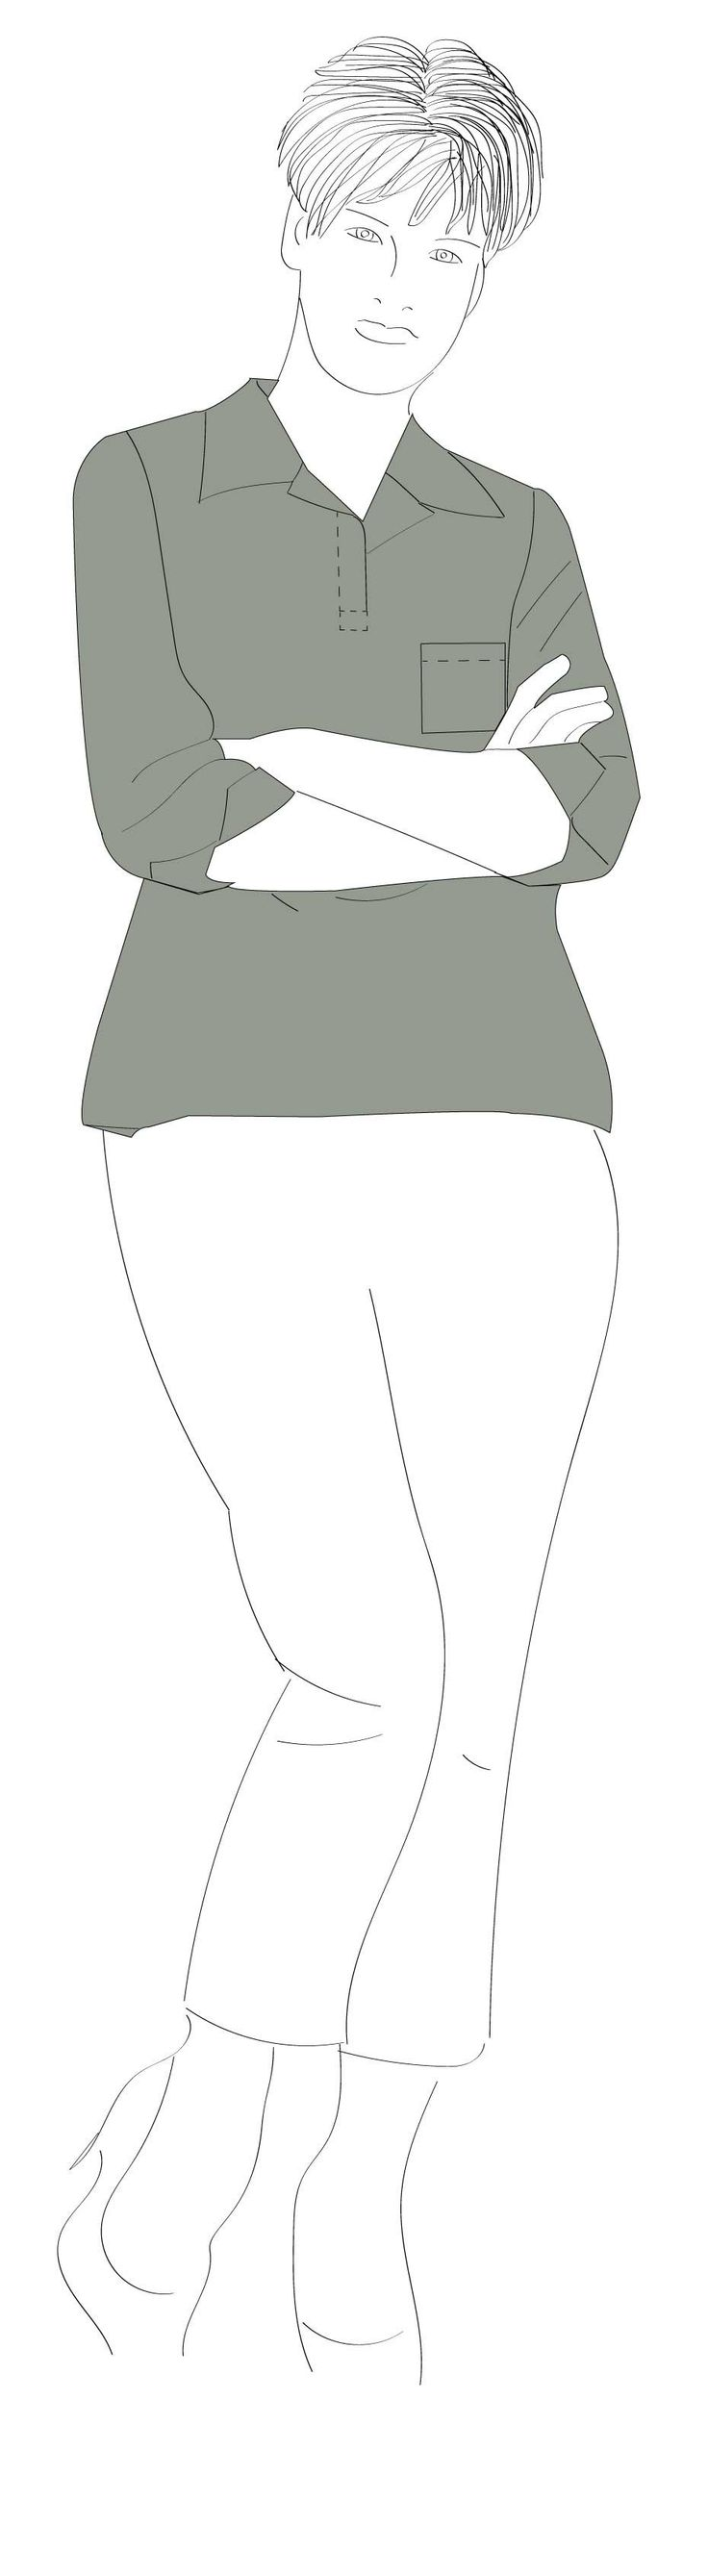 Make your own casual style top with collar and pocket detail.